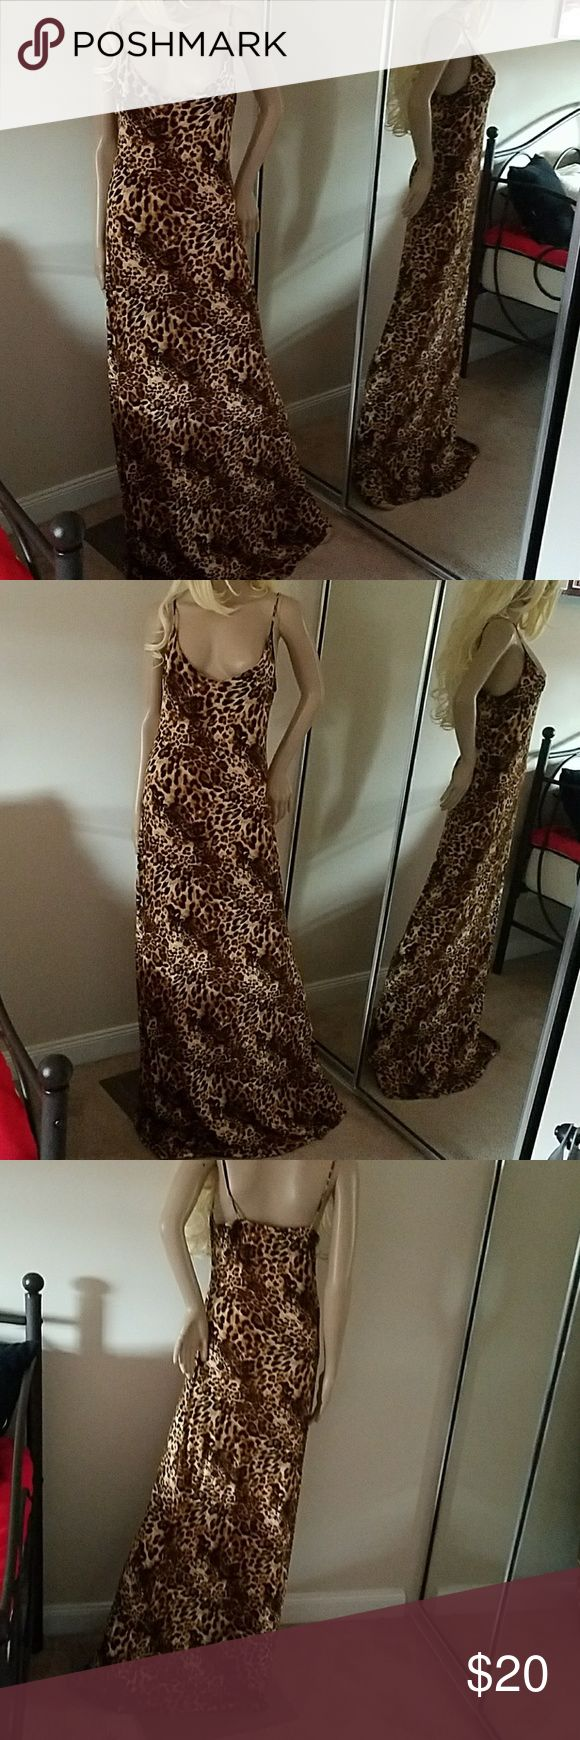 Alloy tall v neck spaghetti strap maxi dress L Alloy tall extra long maxi dress leopard print v neck size L worn 2x washed cold hand wash and hung ALLOY Dresses Maxi